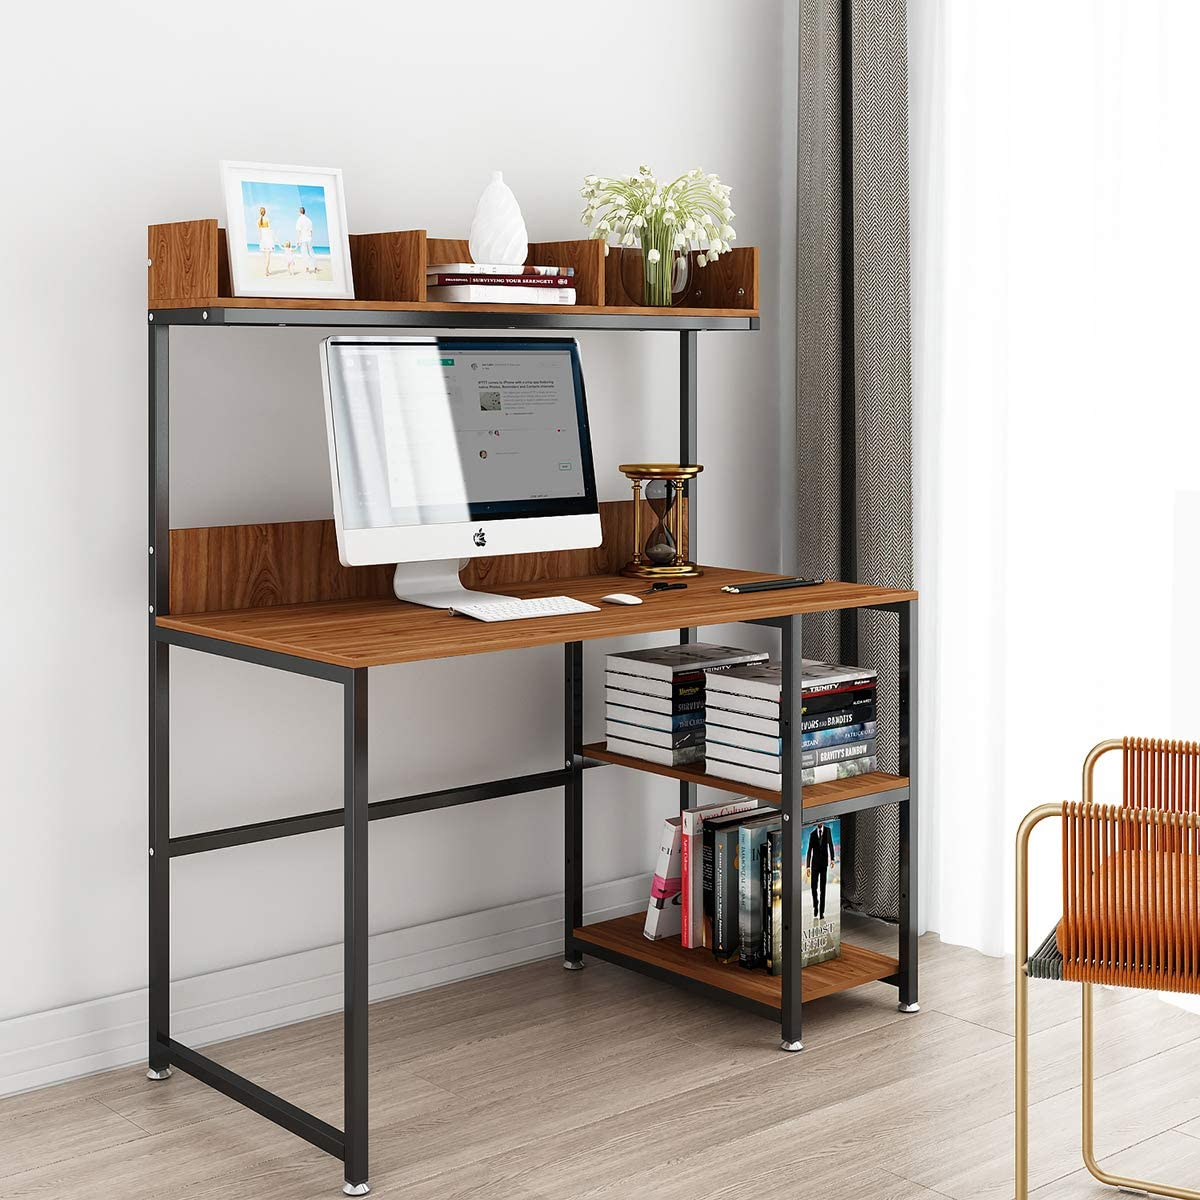 "Computer Desk with Storage Shelf 50"" Office Desk with Hutch and Storage  Shelf Gaming Desk Home Office Desk Writing Study Table Workstation with"